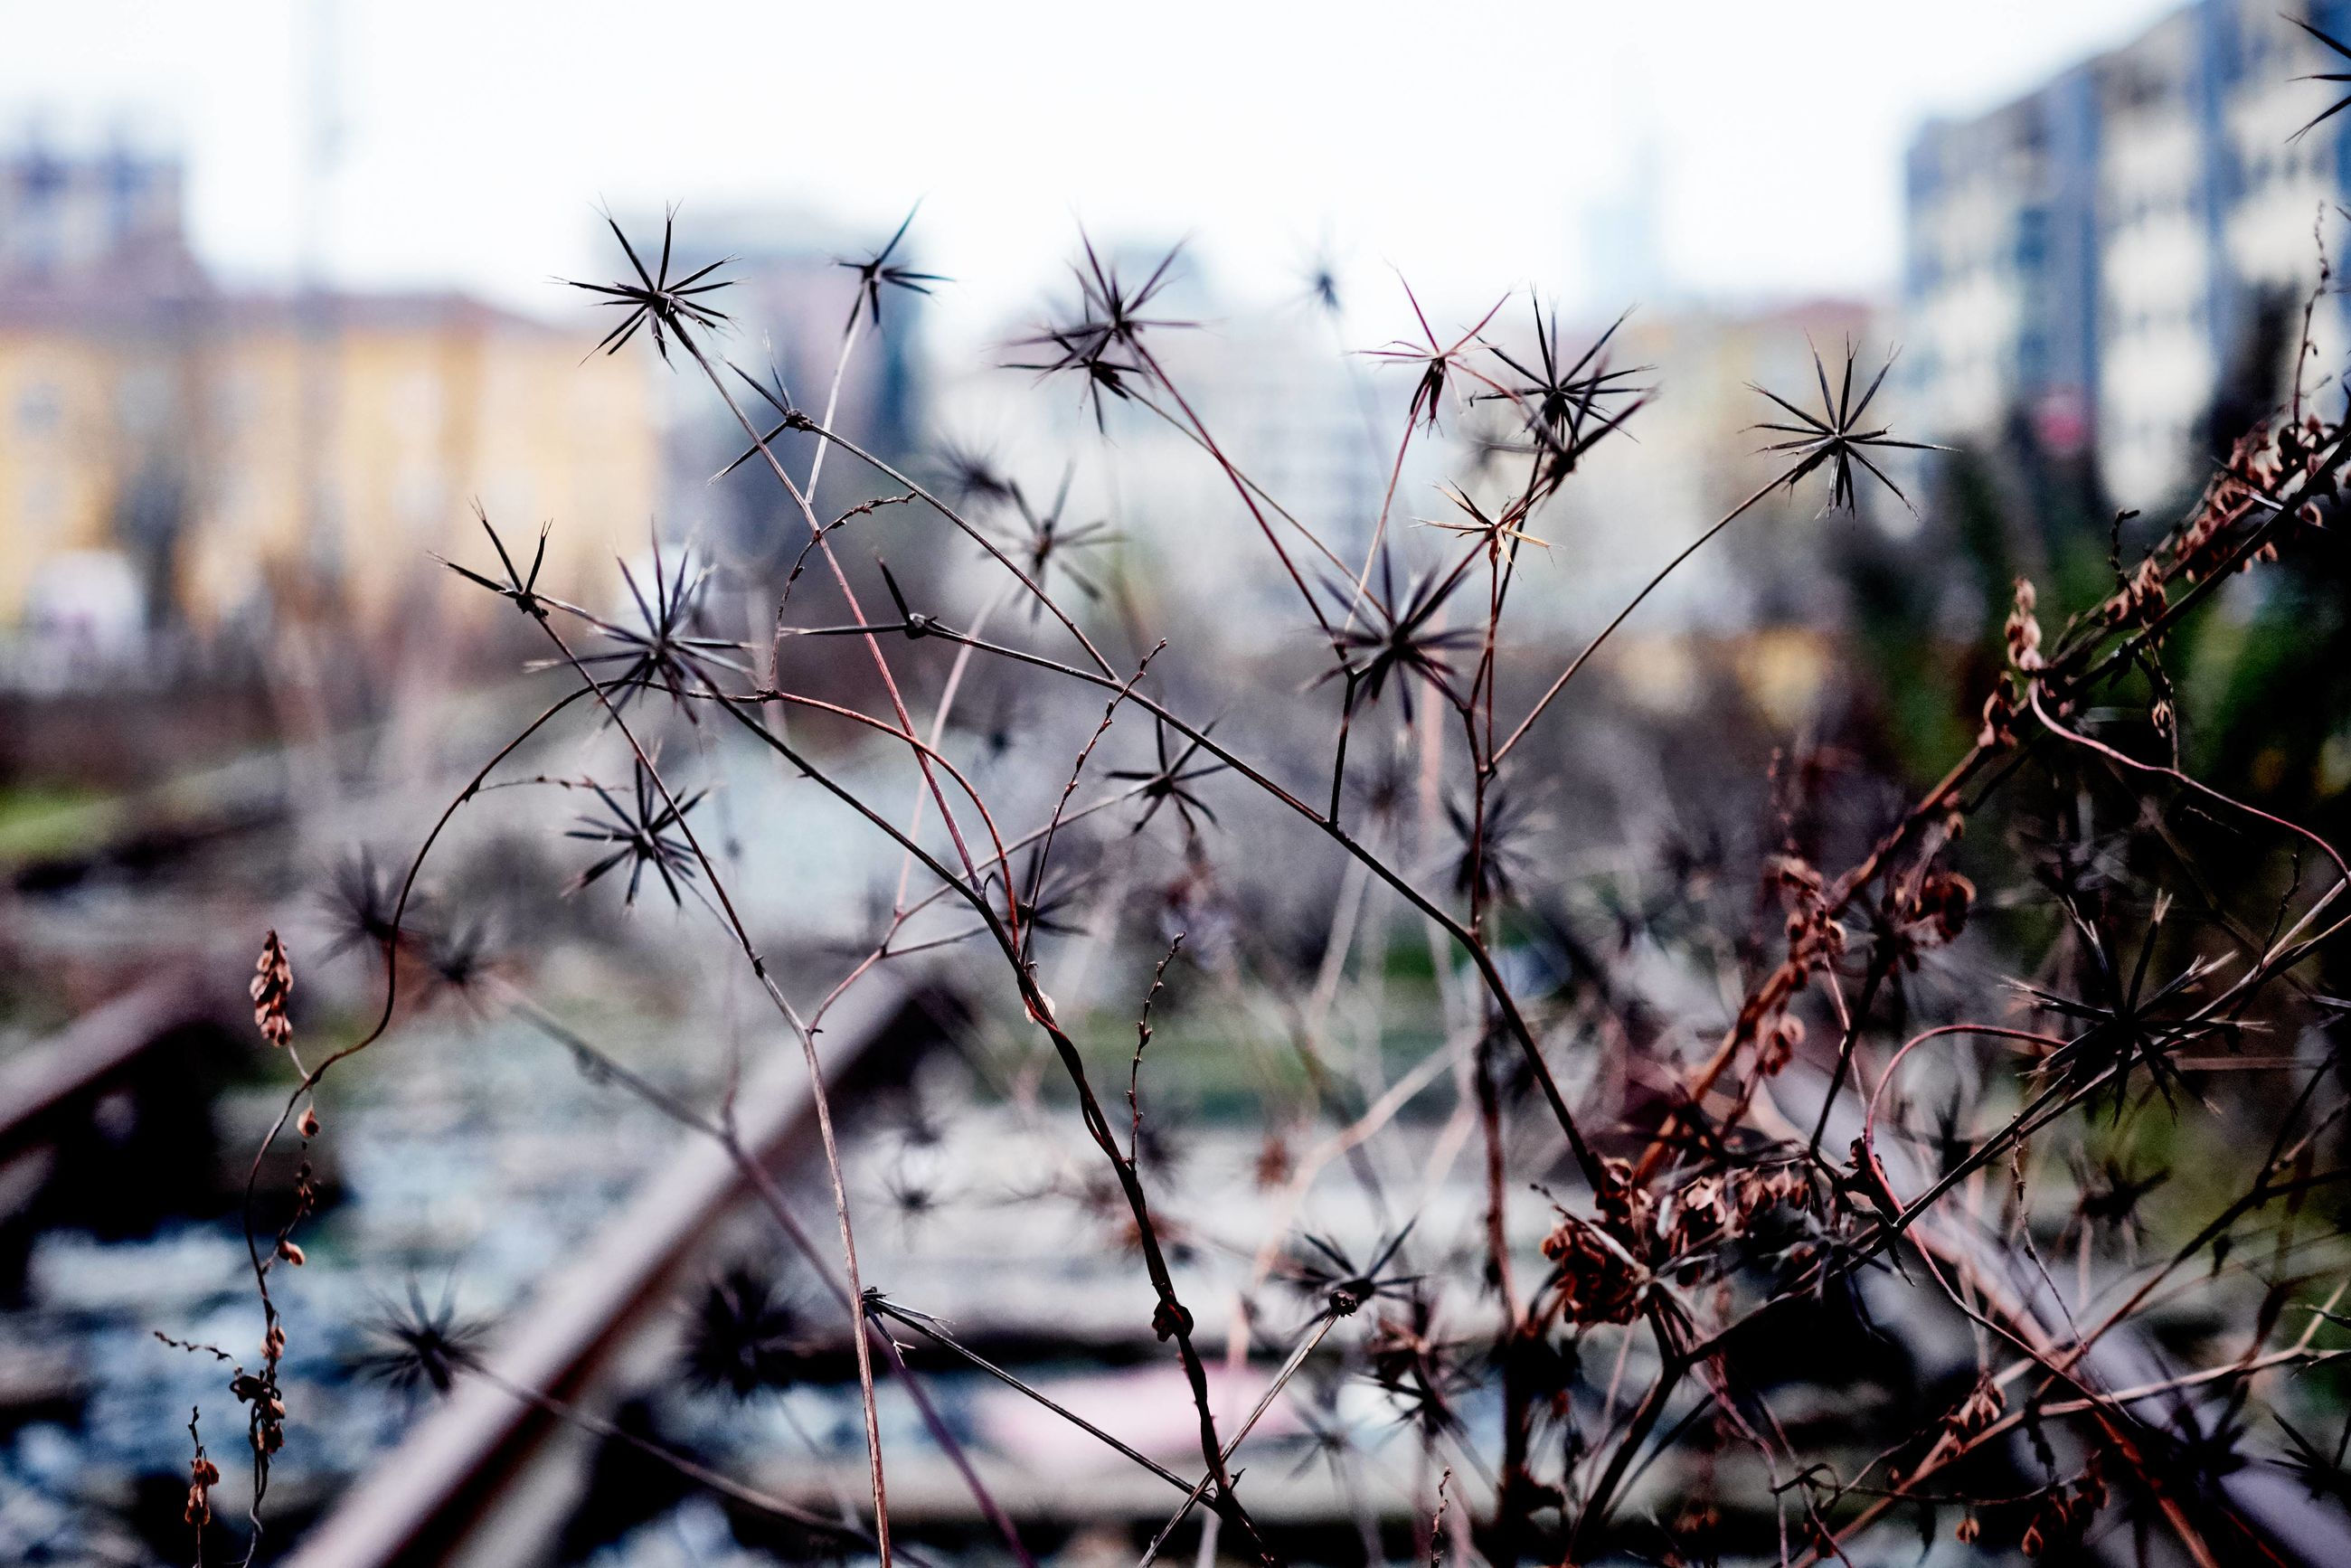 focus on foreground, nature, plant, close-up, outdoors, no people, beauty in nature, winter, tree, sunset, growth, branch, landscape, day, sky